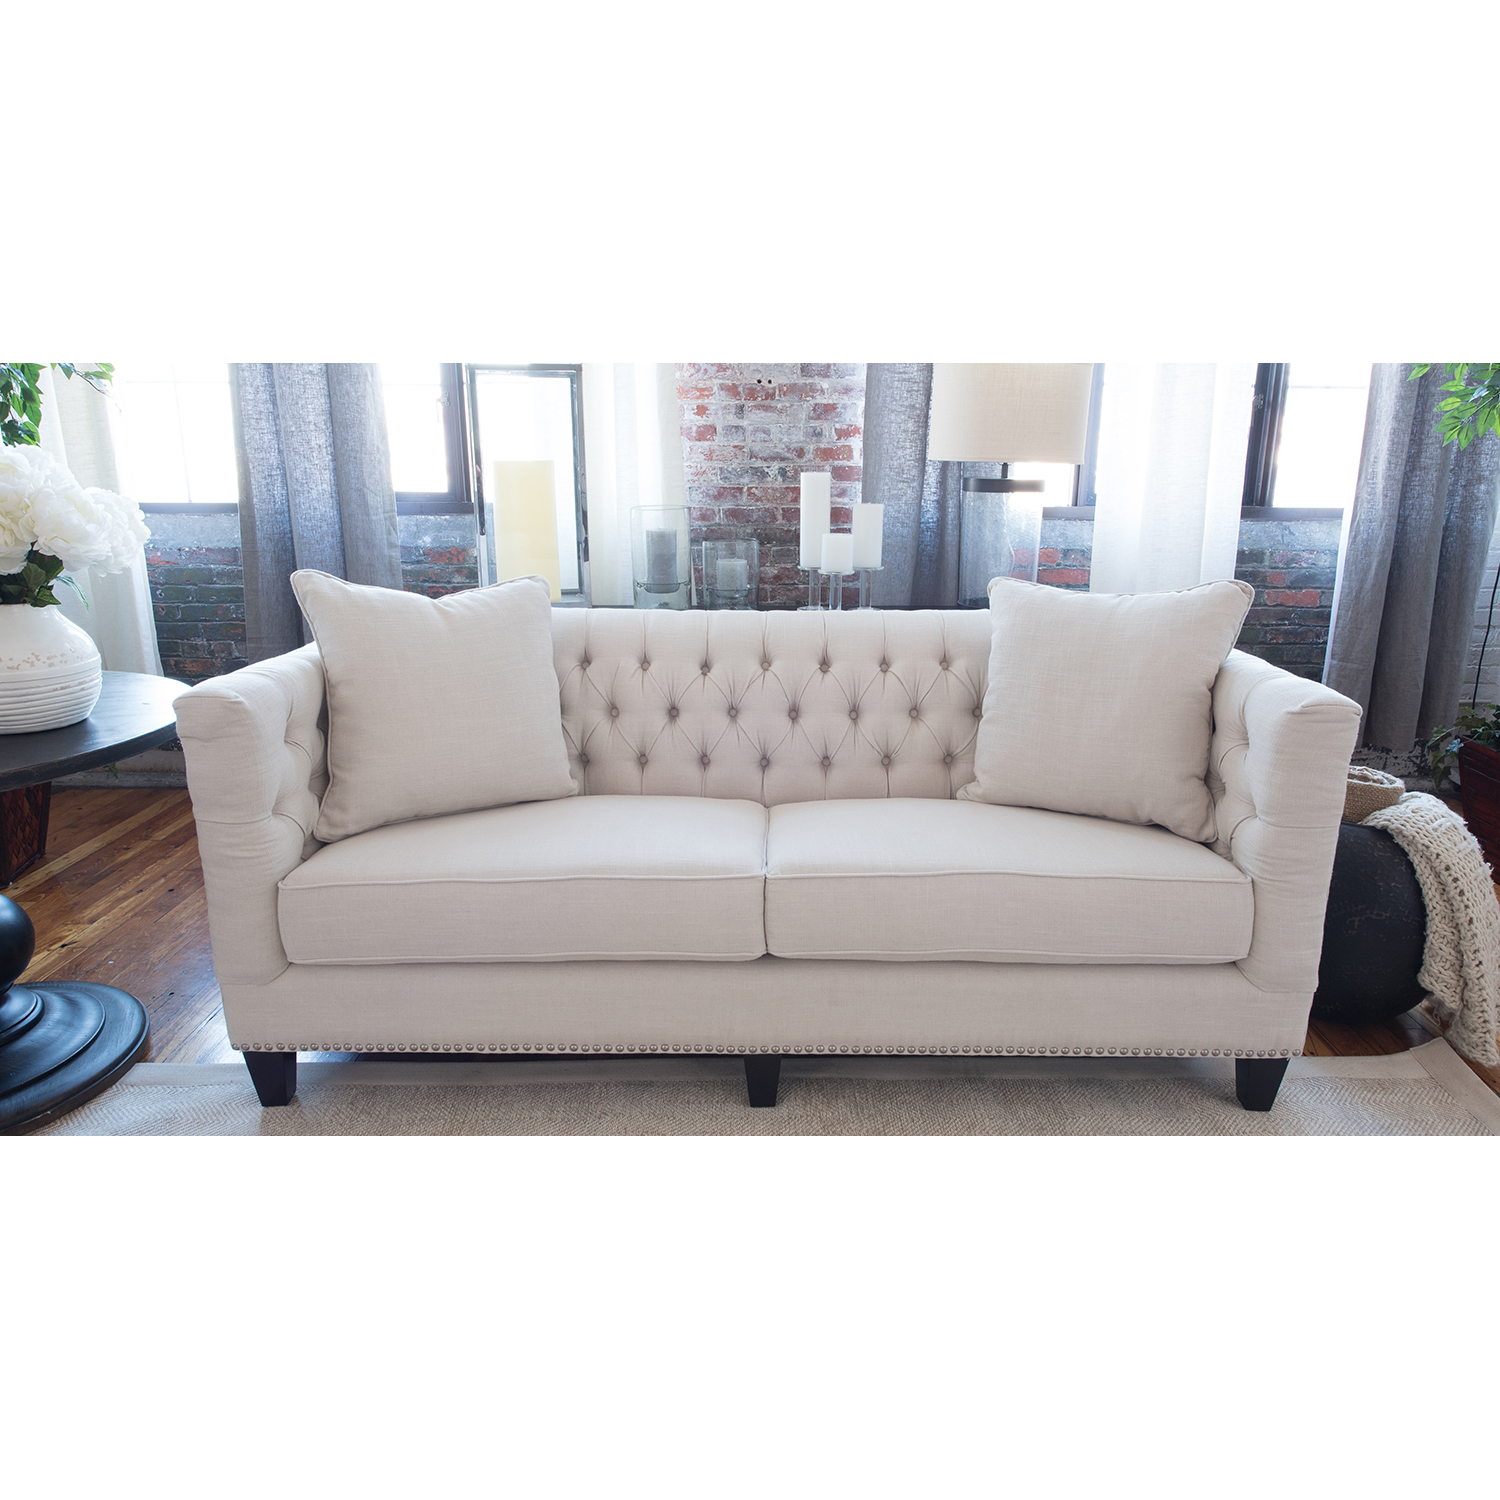 South Beach Sofa - Seashell - ELE-SOU-S-SEAS-7-NH30